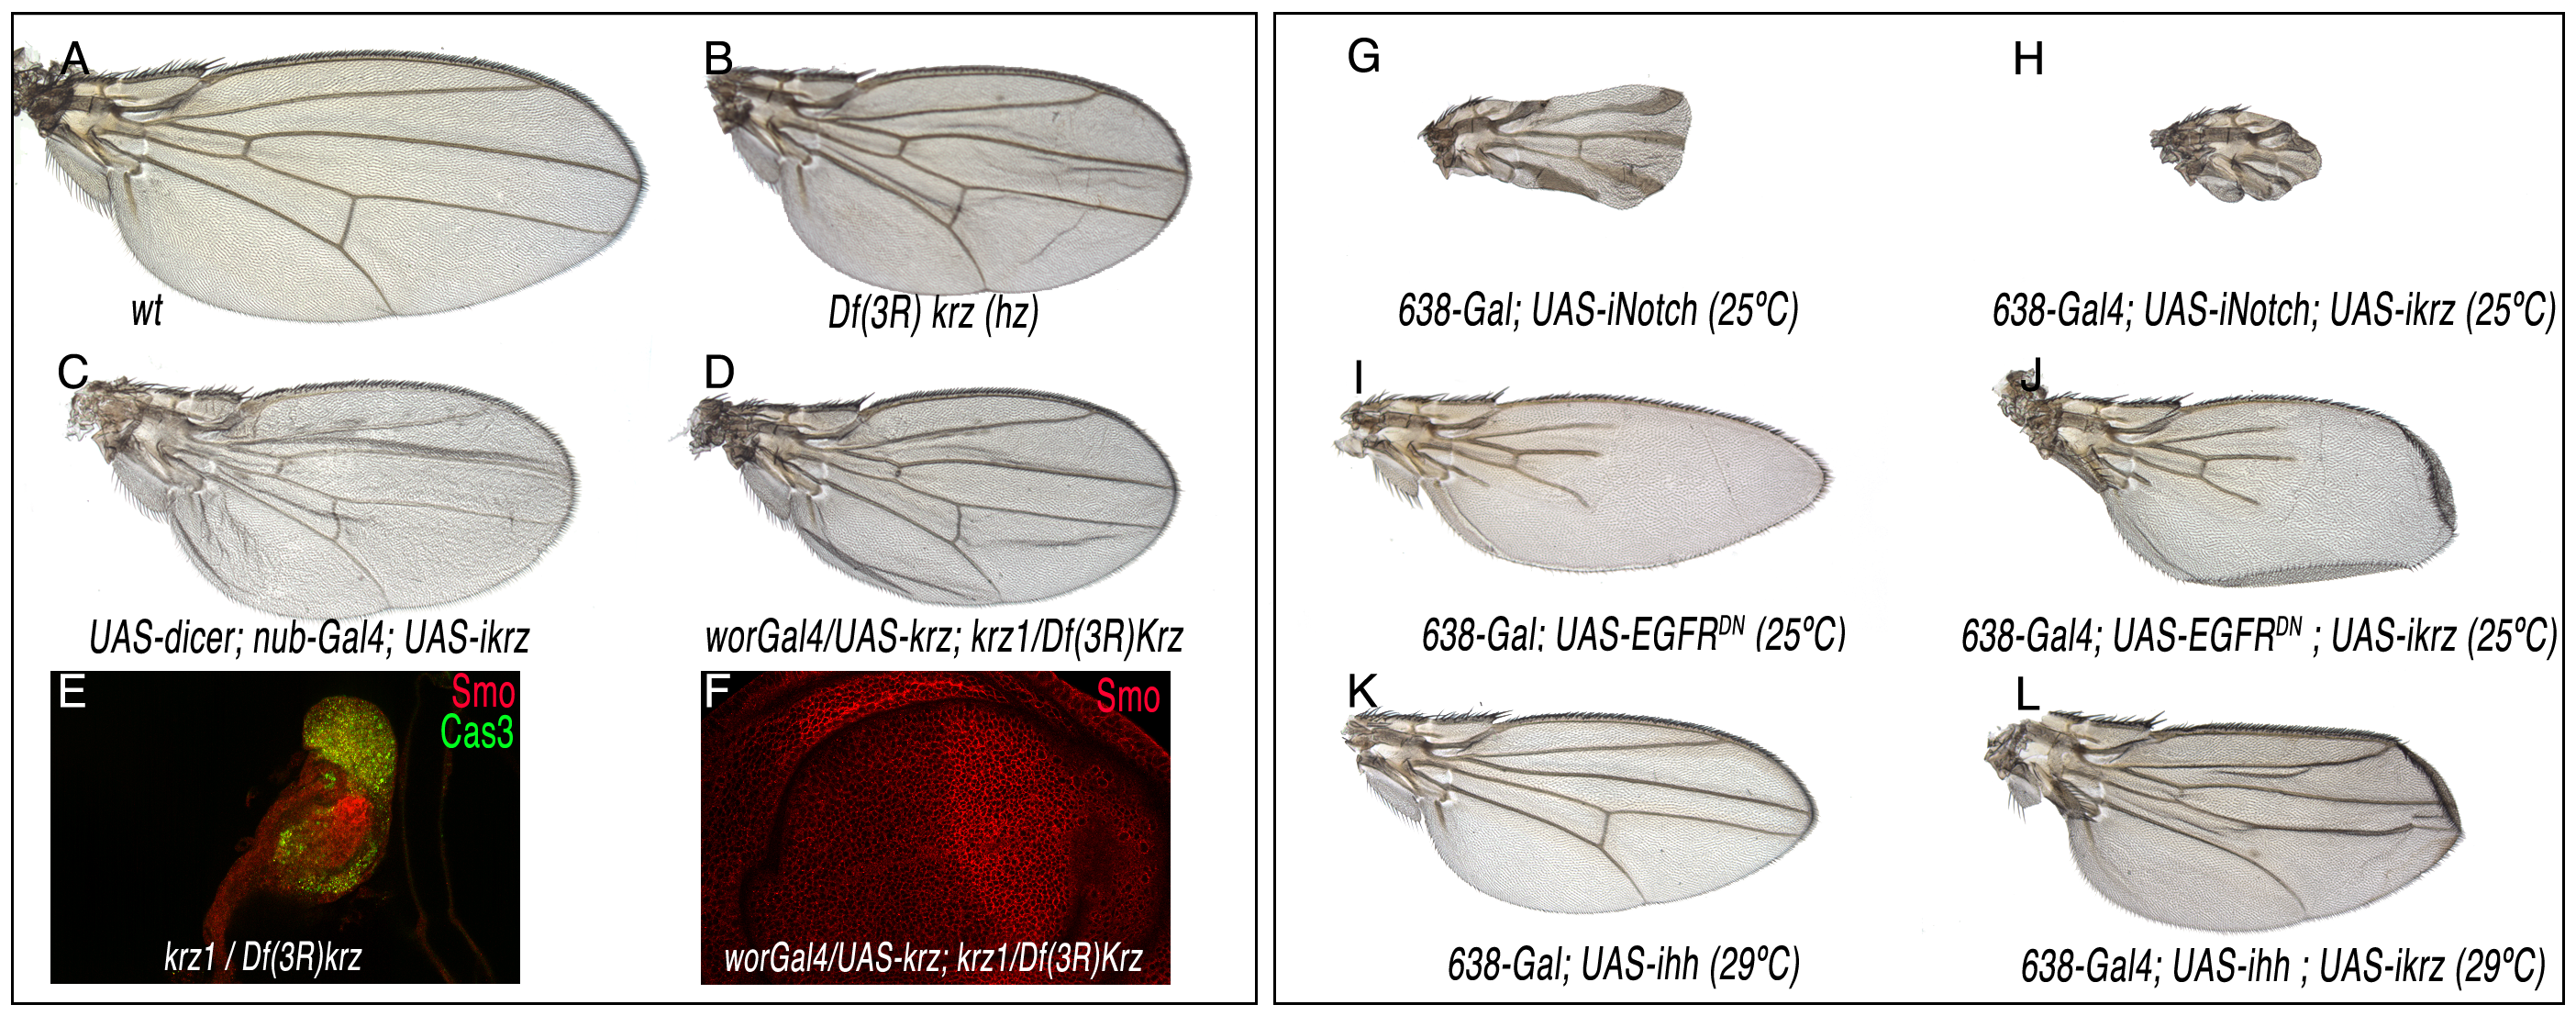 Loss-of-function phenotype of <i>krz</i> in the wing.